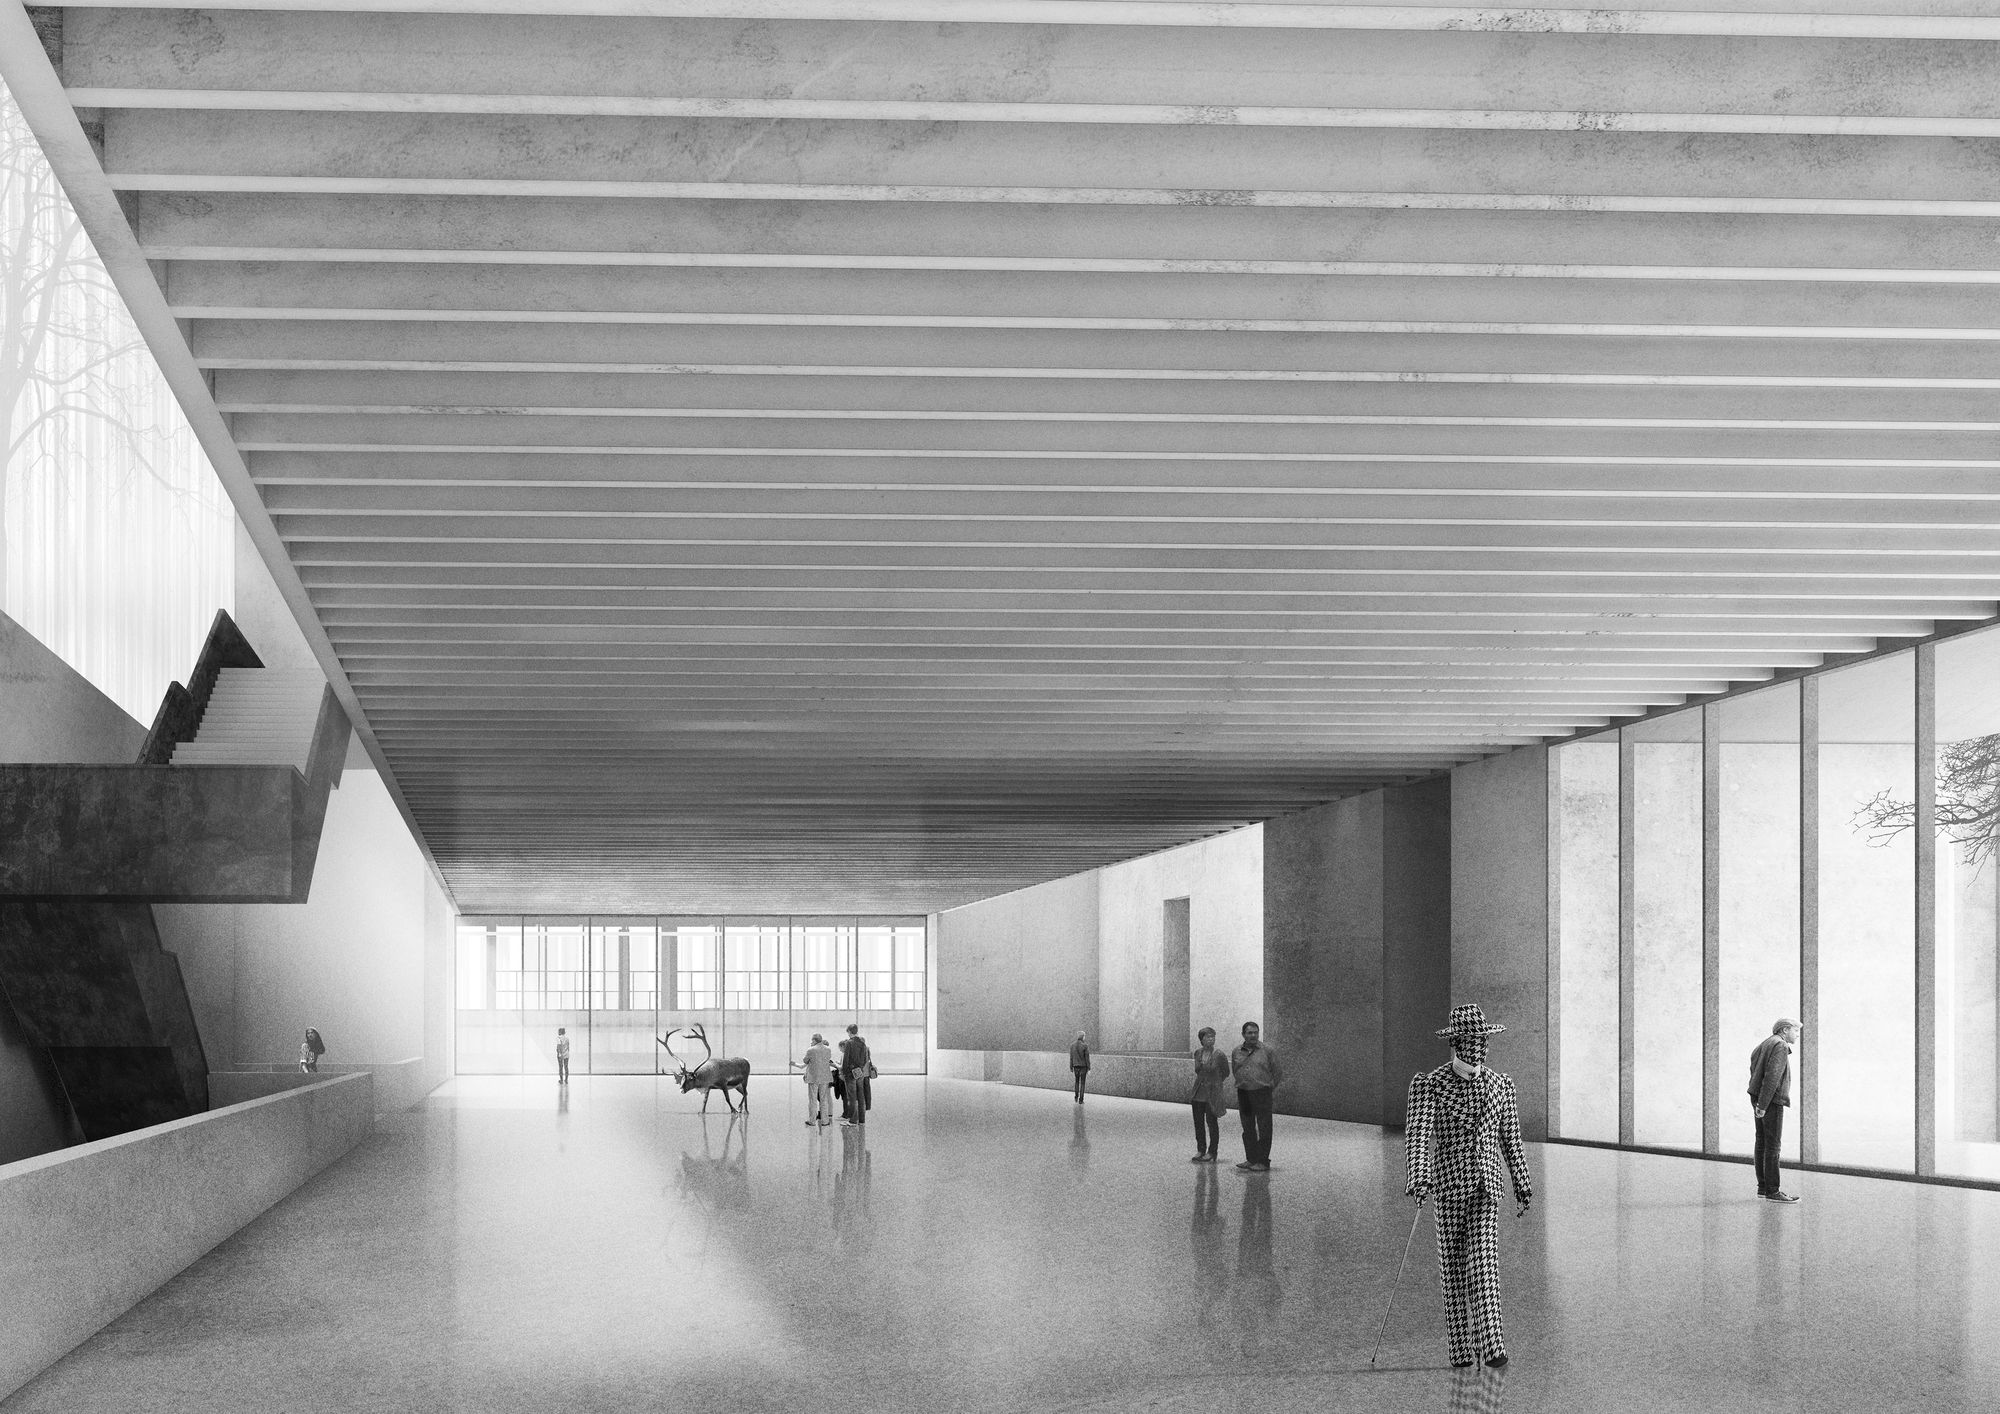 20Th Century Architects david chipperfield | a f a s i a